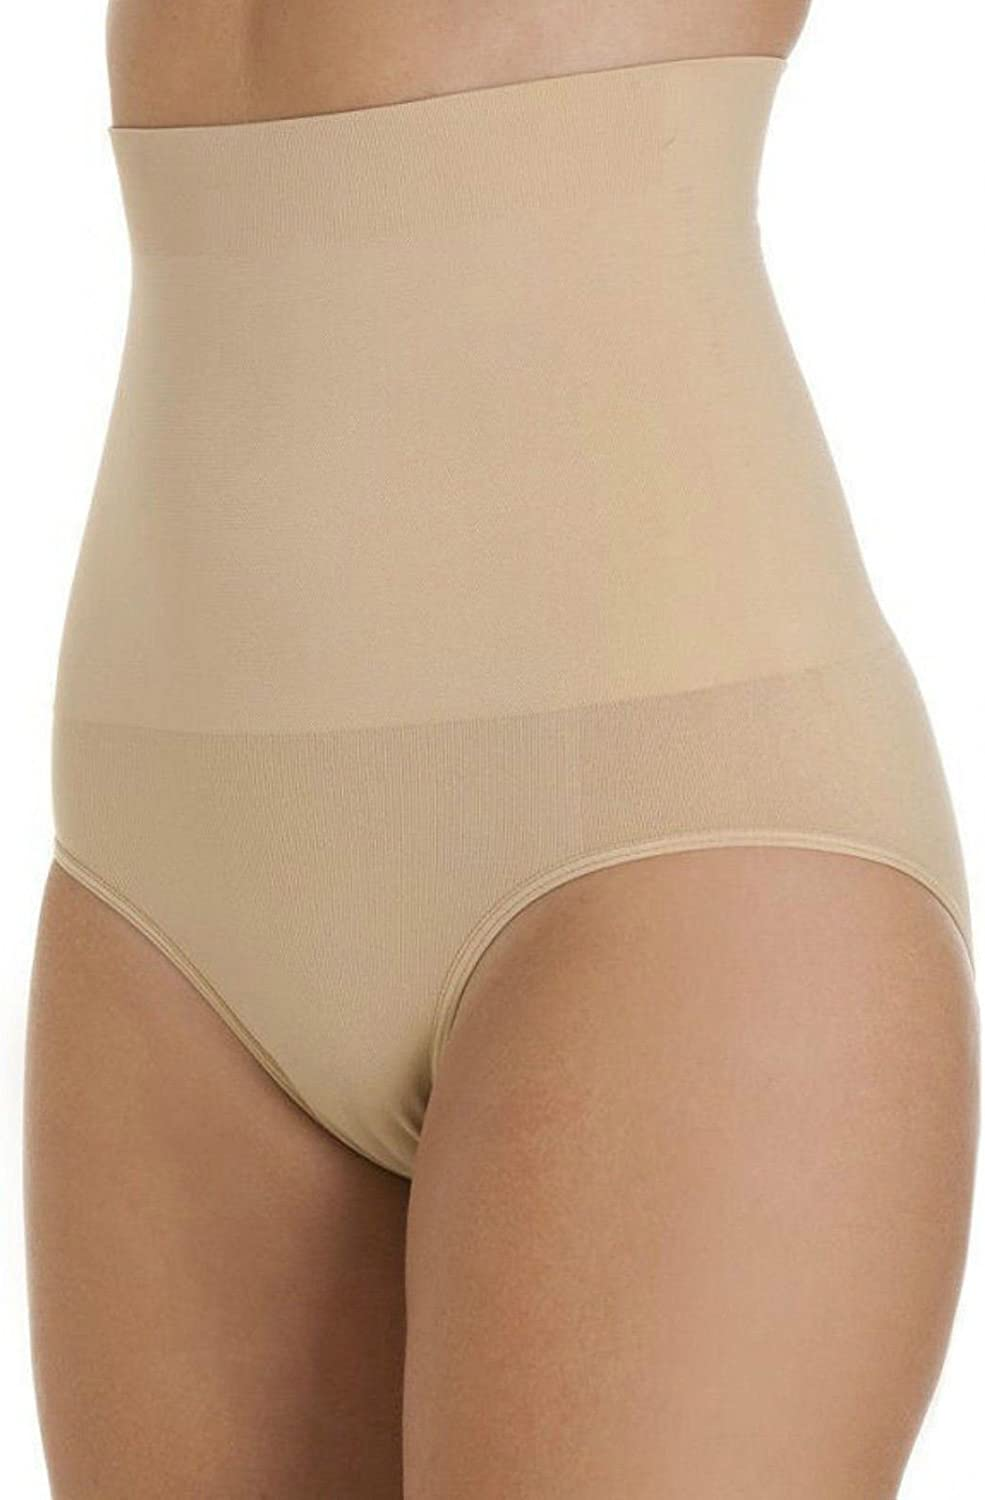 Undercover Womens Shapewear Seamfree High Waist Slimming Control Briefs Tummy Tuck Bum Lift from